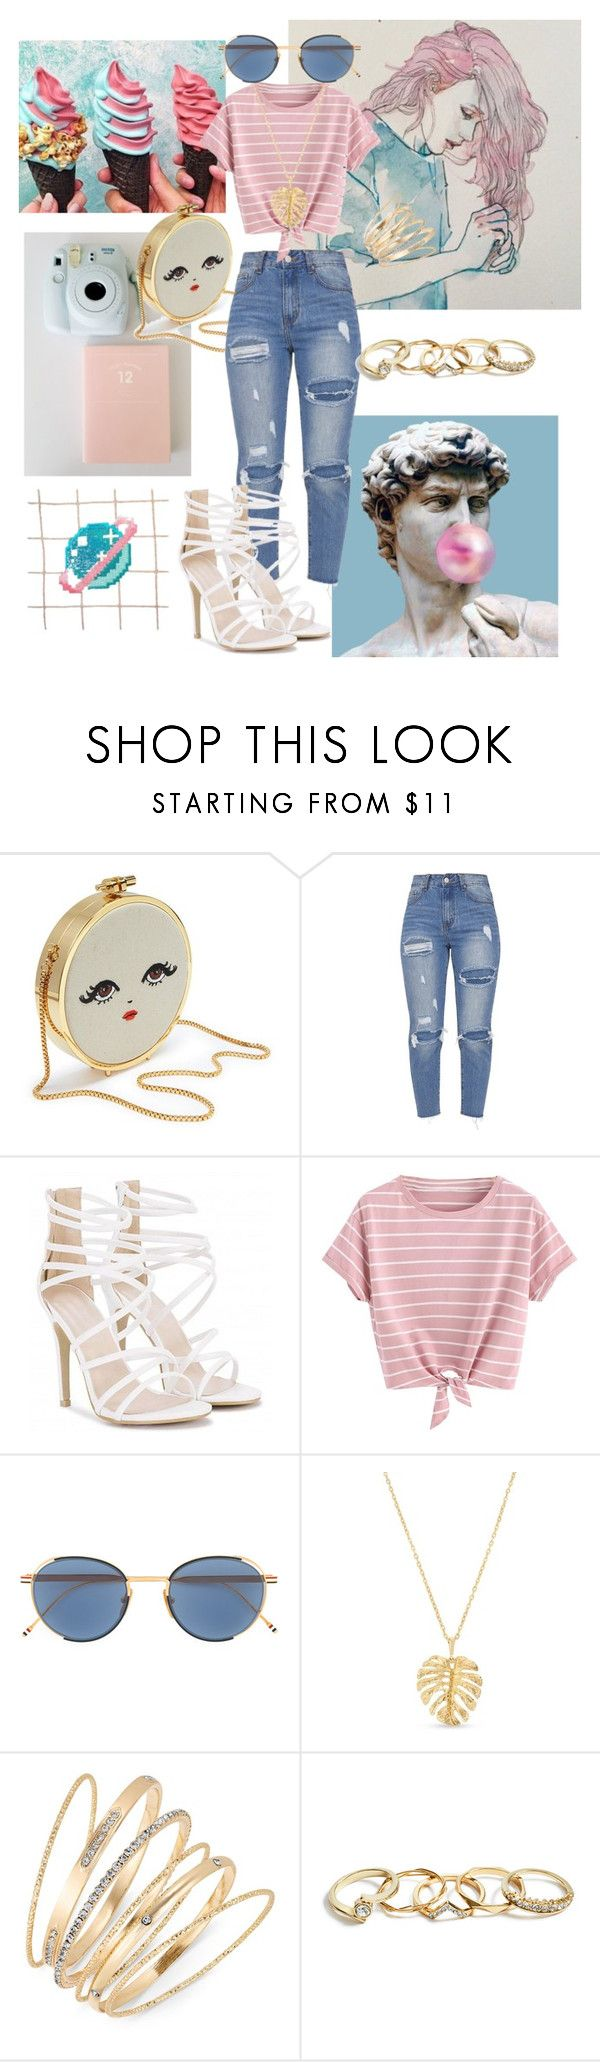 """""""Pink & Blue Aesthetic"""" by nannie-howelter ❤ liked on Polyvore featuring Crown & Ivy, Thalia Sodi and GUESS"""